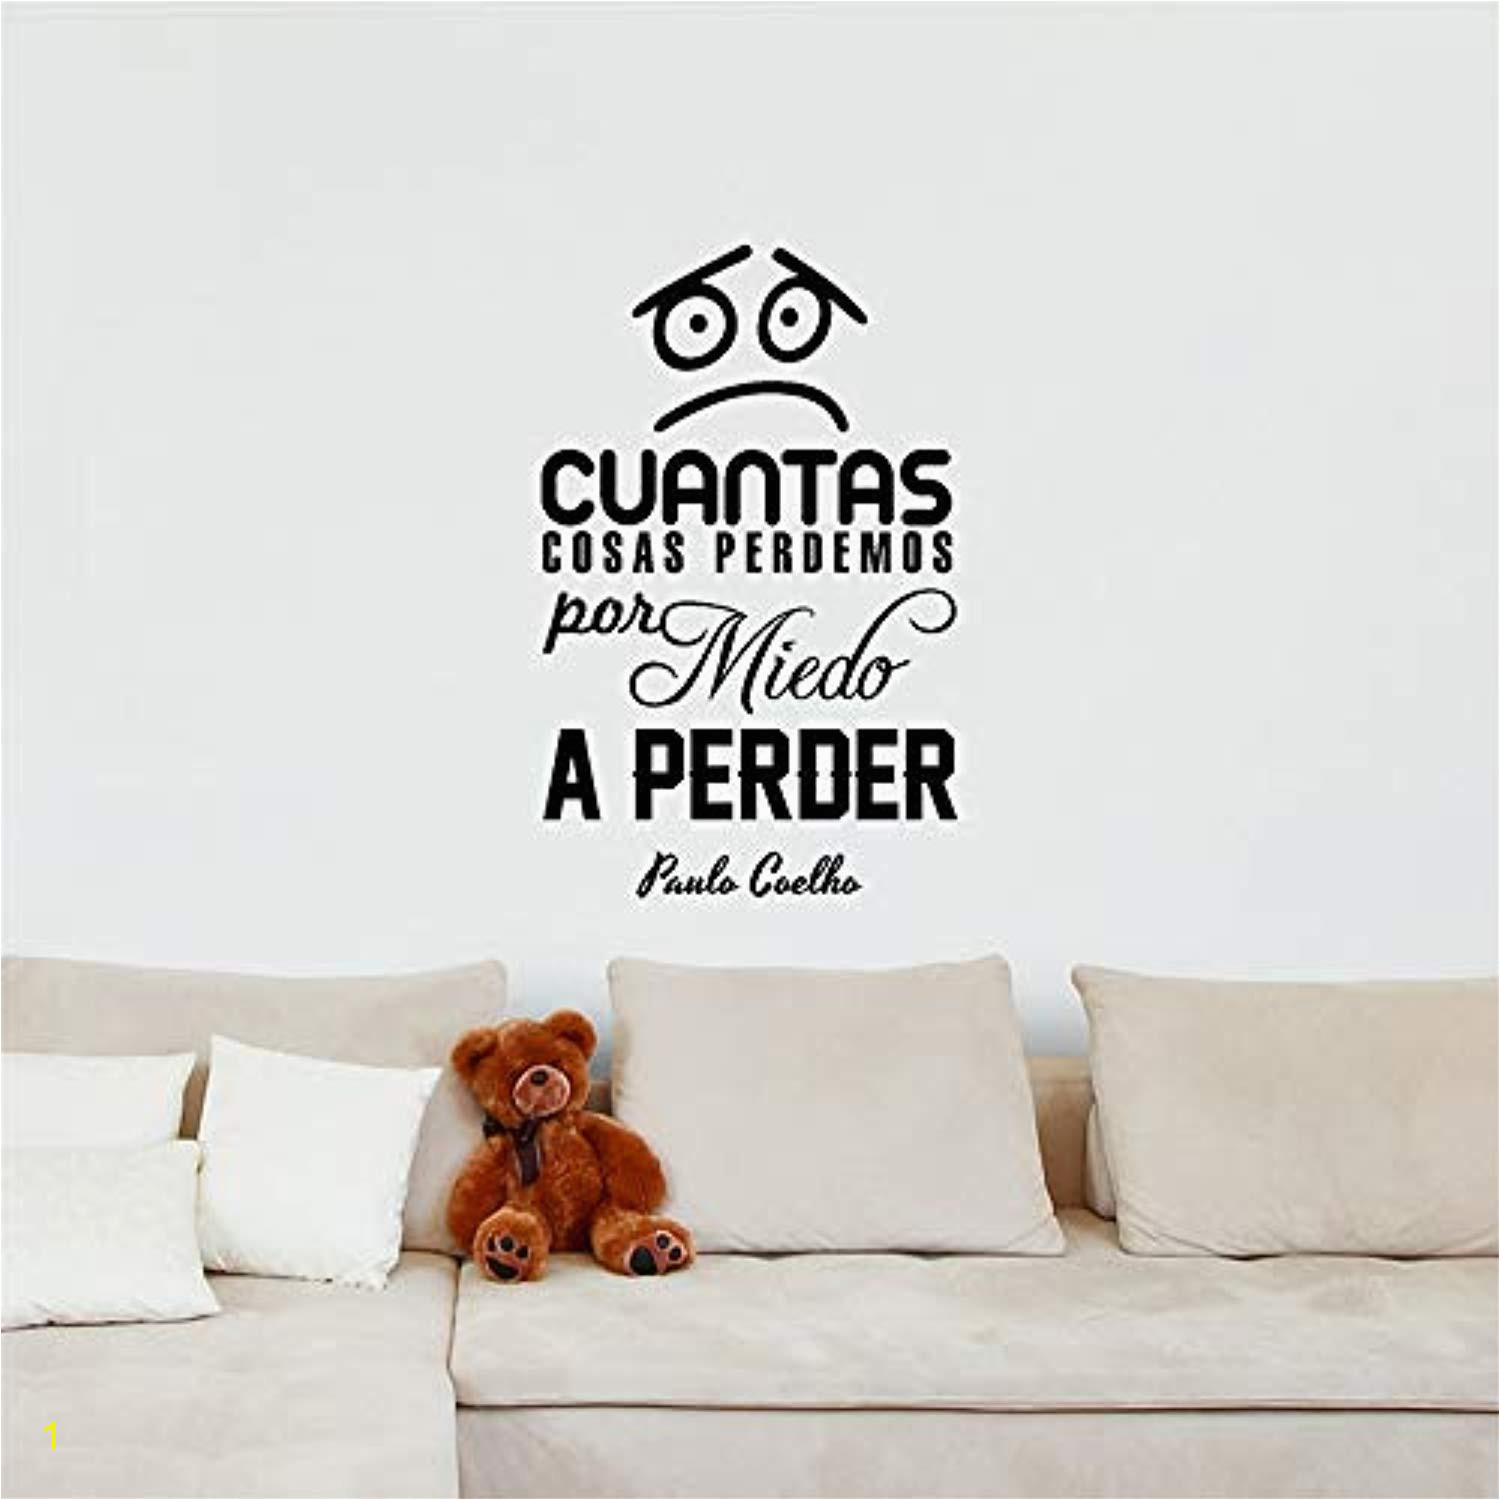 Wall Decal Mural Stickers Amazon Peel and Stick Mural Spanish Quote Cuántas Cosas